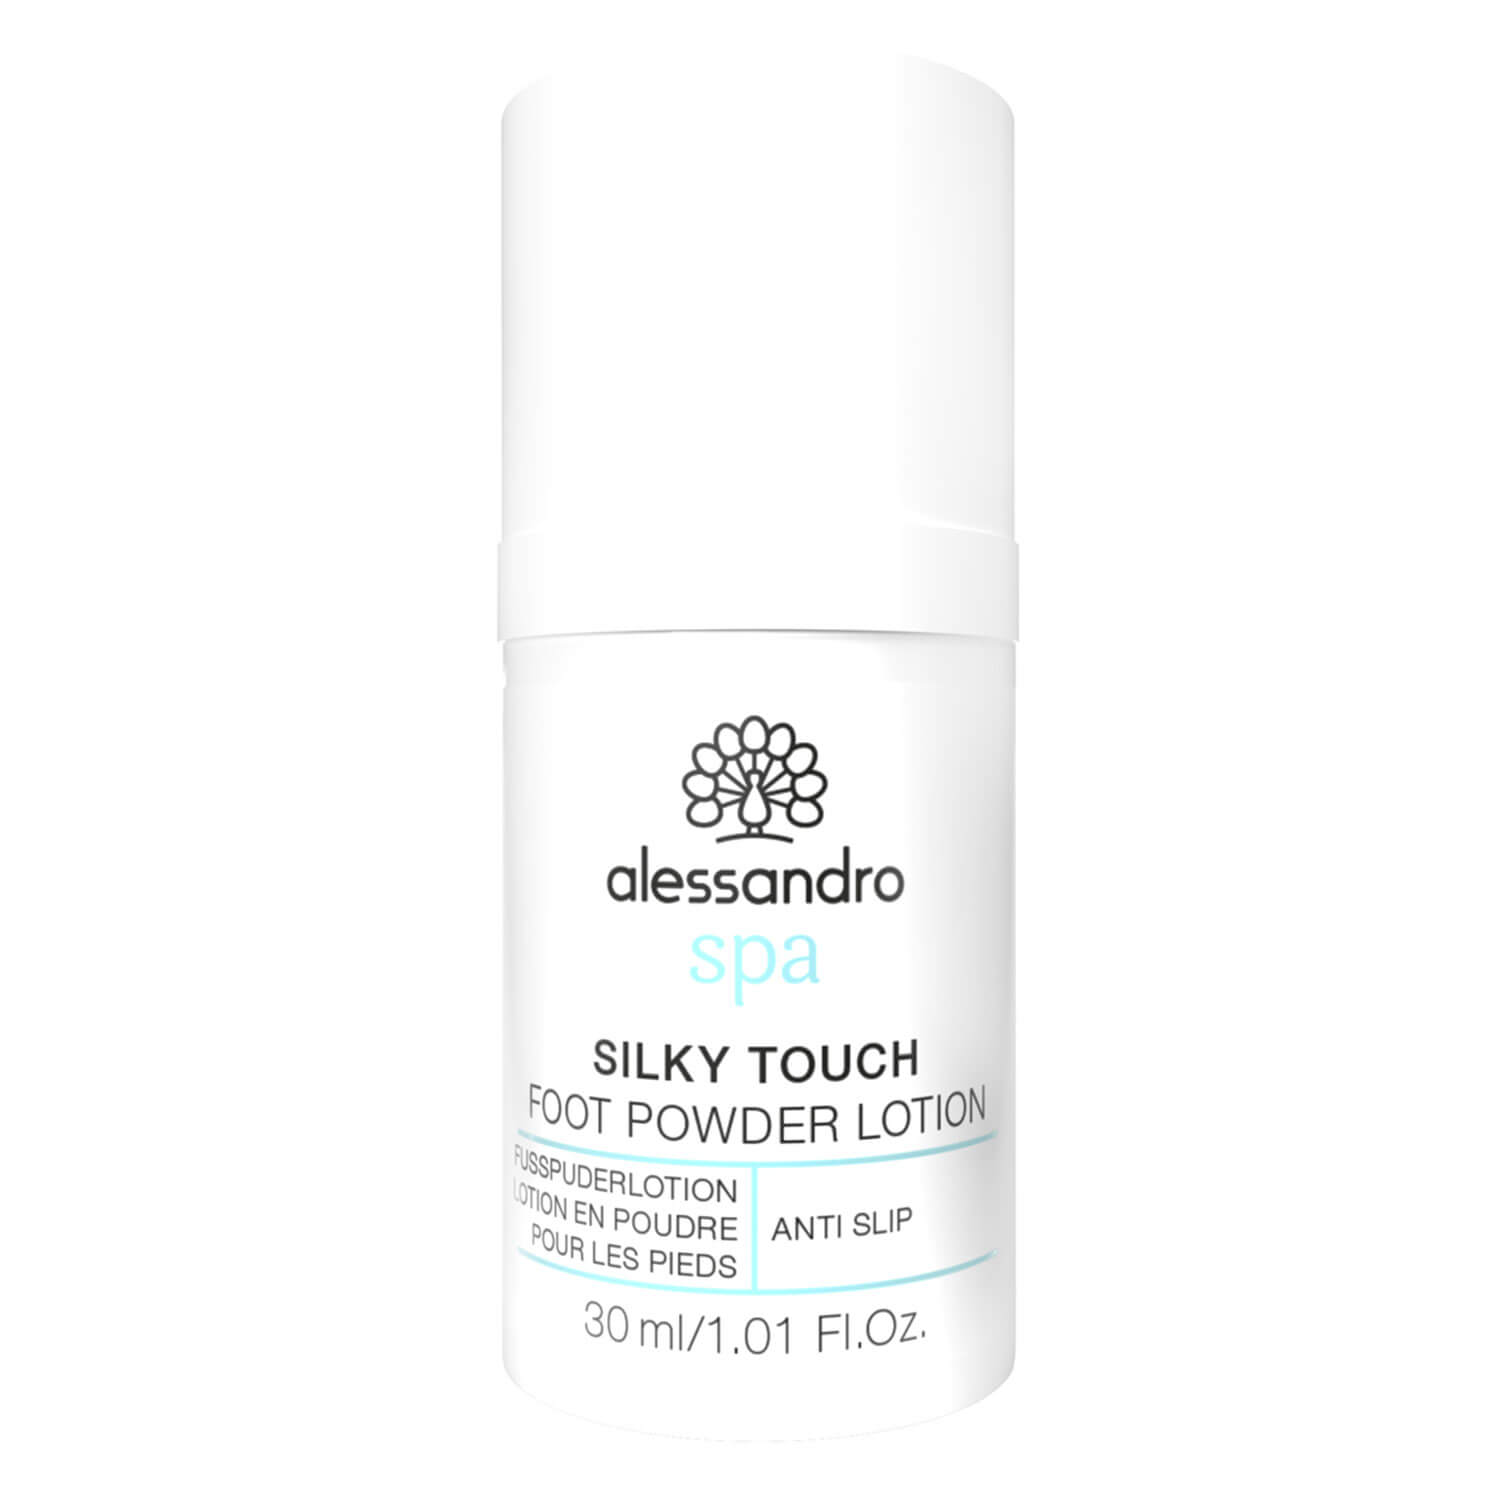 Alessandro Spa - Foot Silky Touch Foot Powder Lotion - 30ml